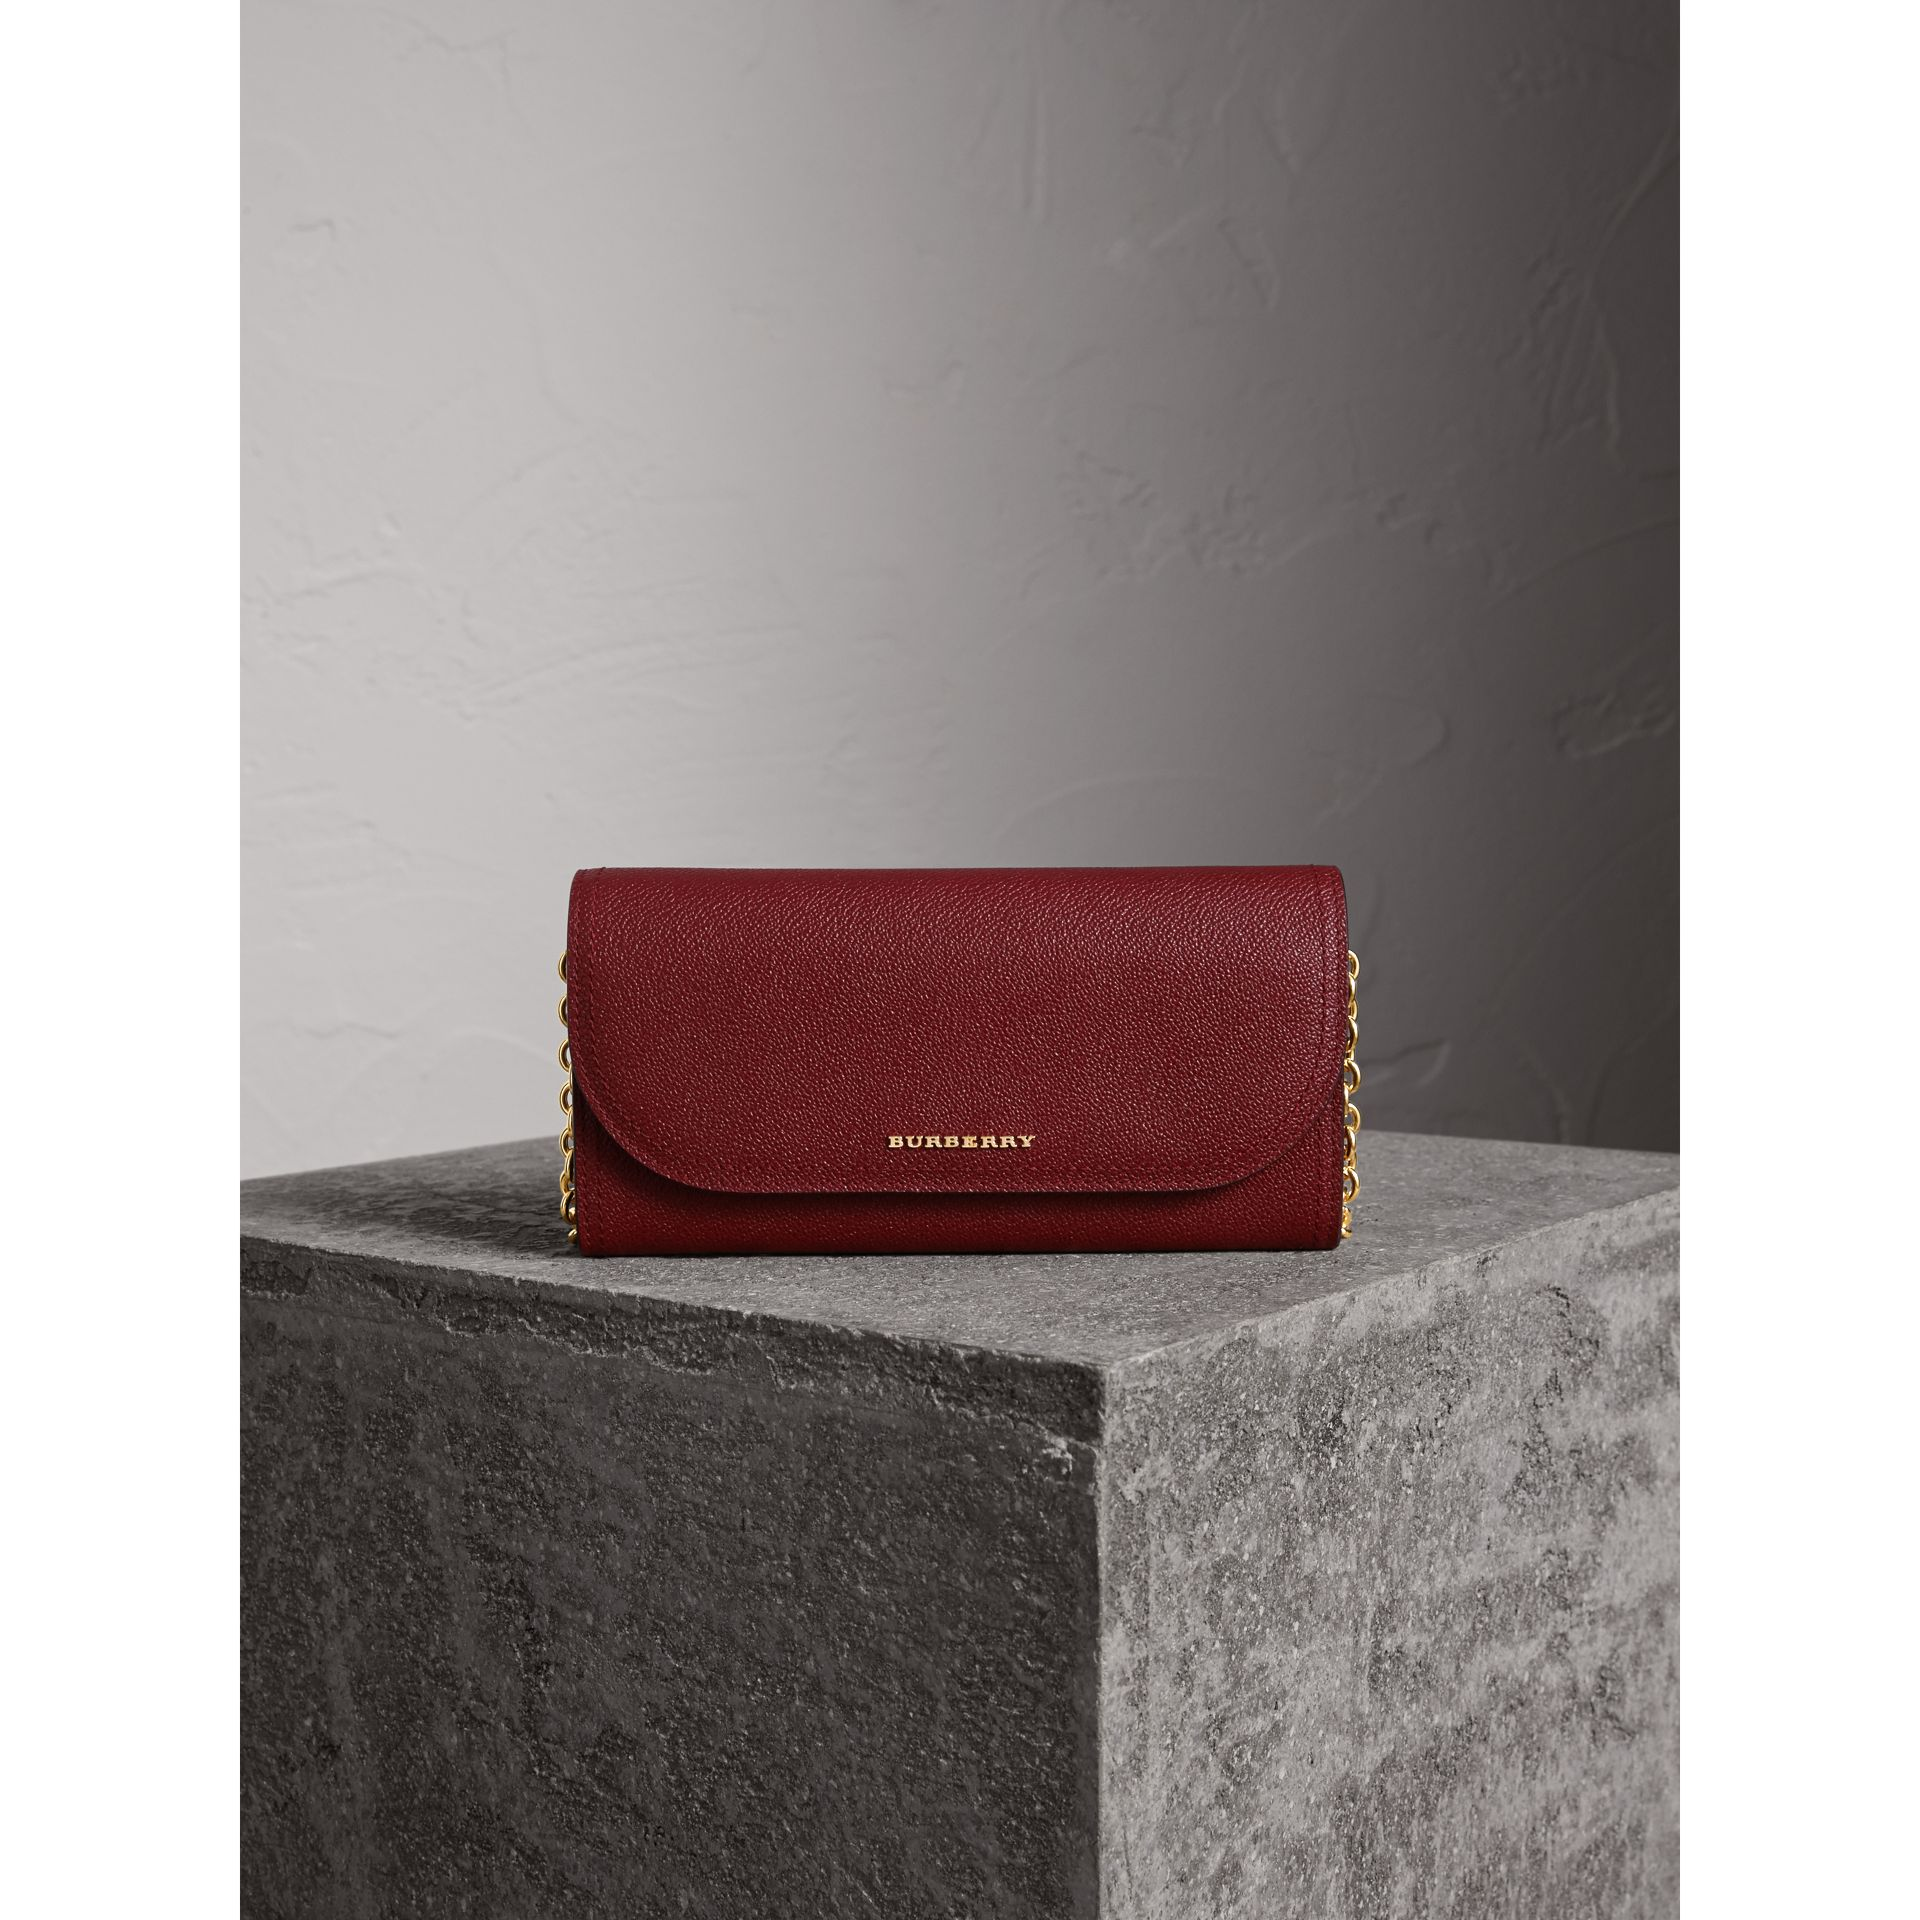 Leather Wallet with Chain in Burgundy - Women | Burberry - gallery image 3